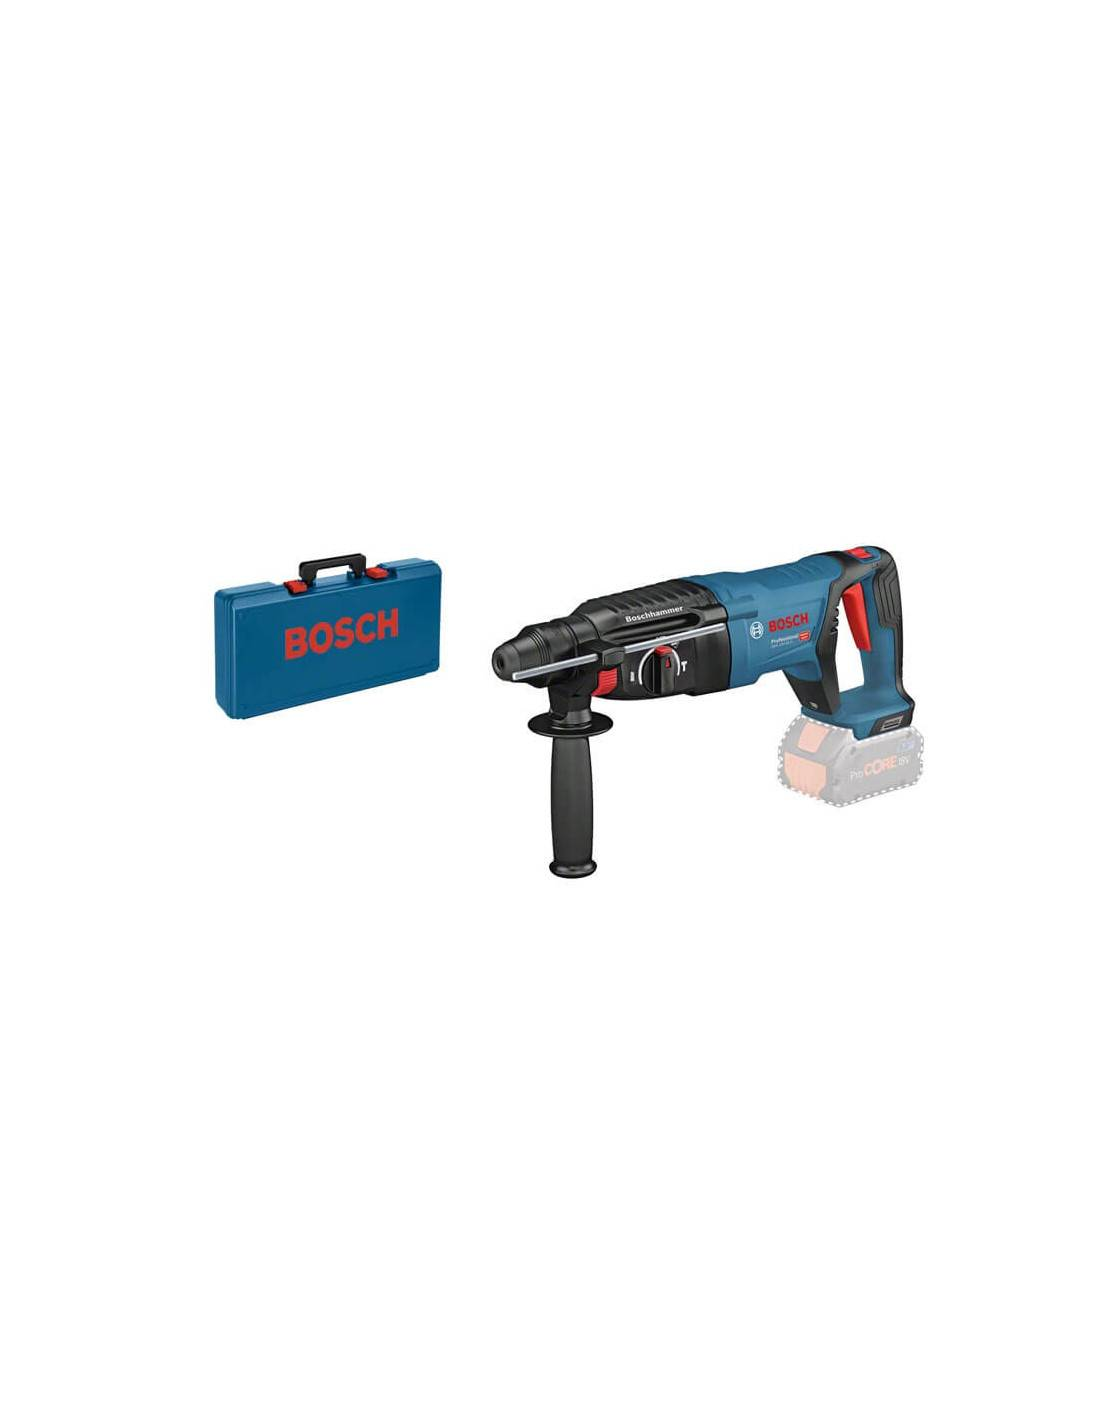 Perforateur SDS+ GBH 18V-26 D solo (machine seule) en coffret standard - BOSCH - 0611916000